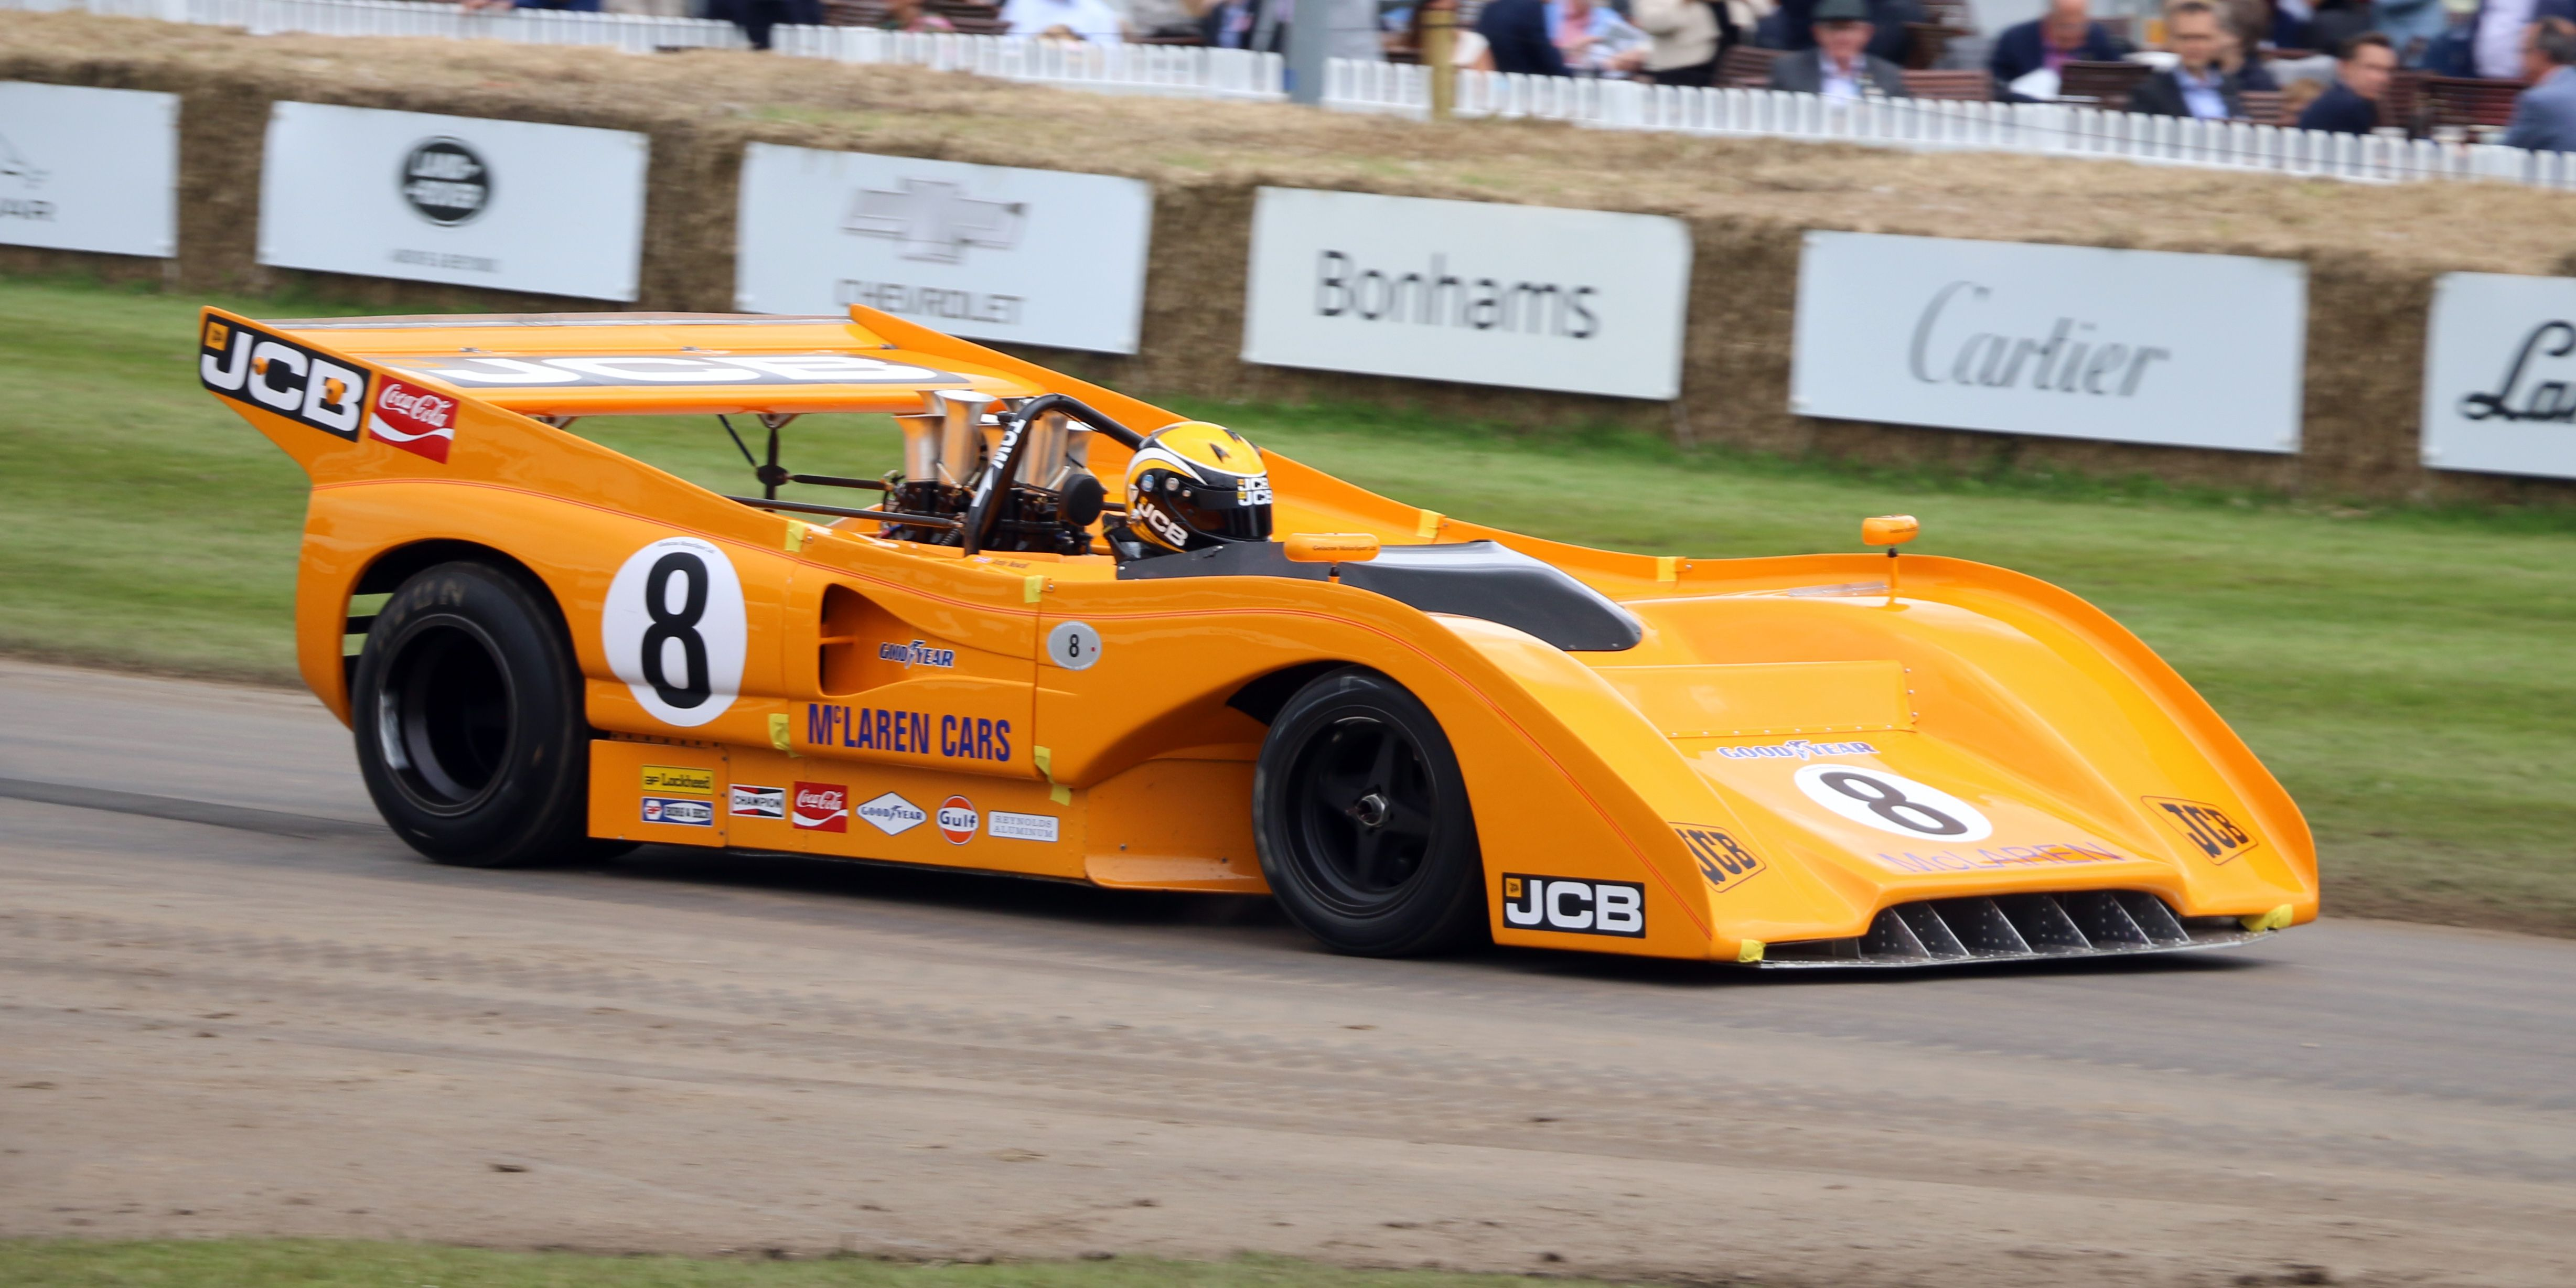 What If Your Race Car Is a 900 Horsepower Wing from 1973?